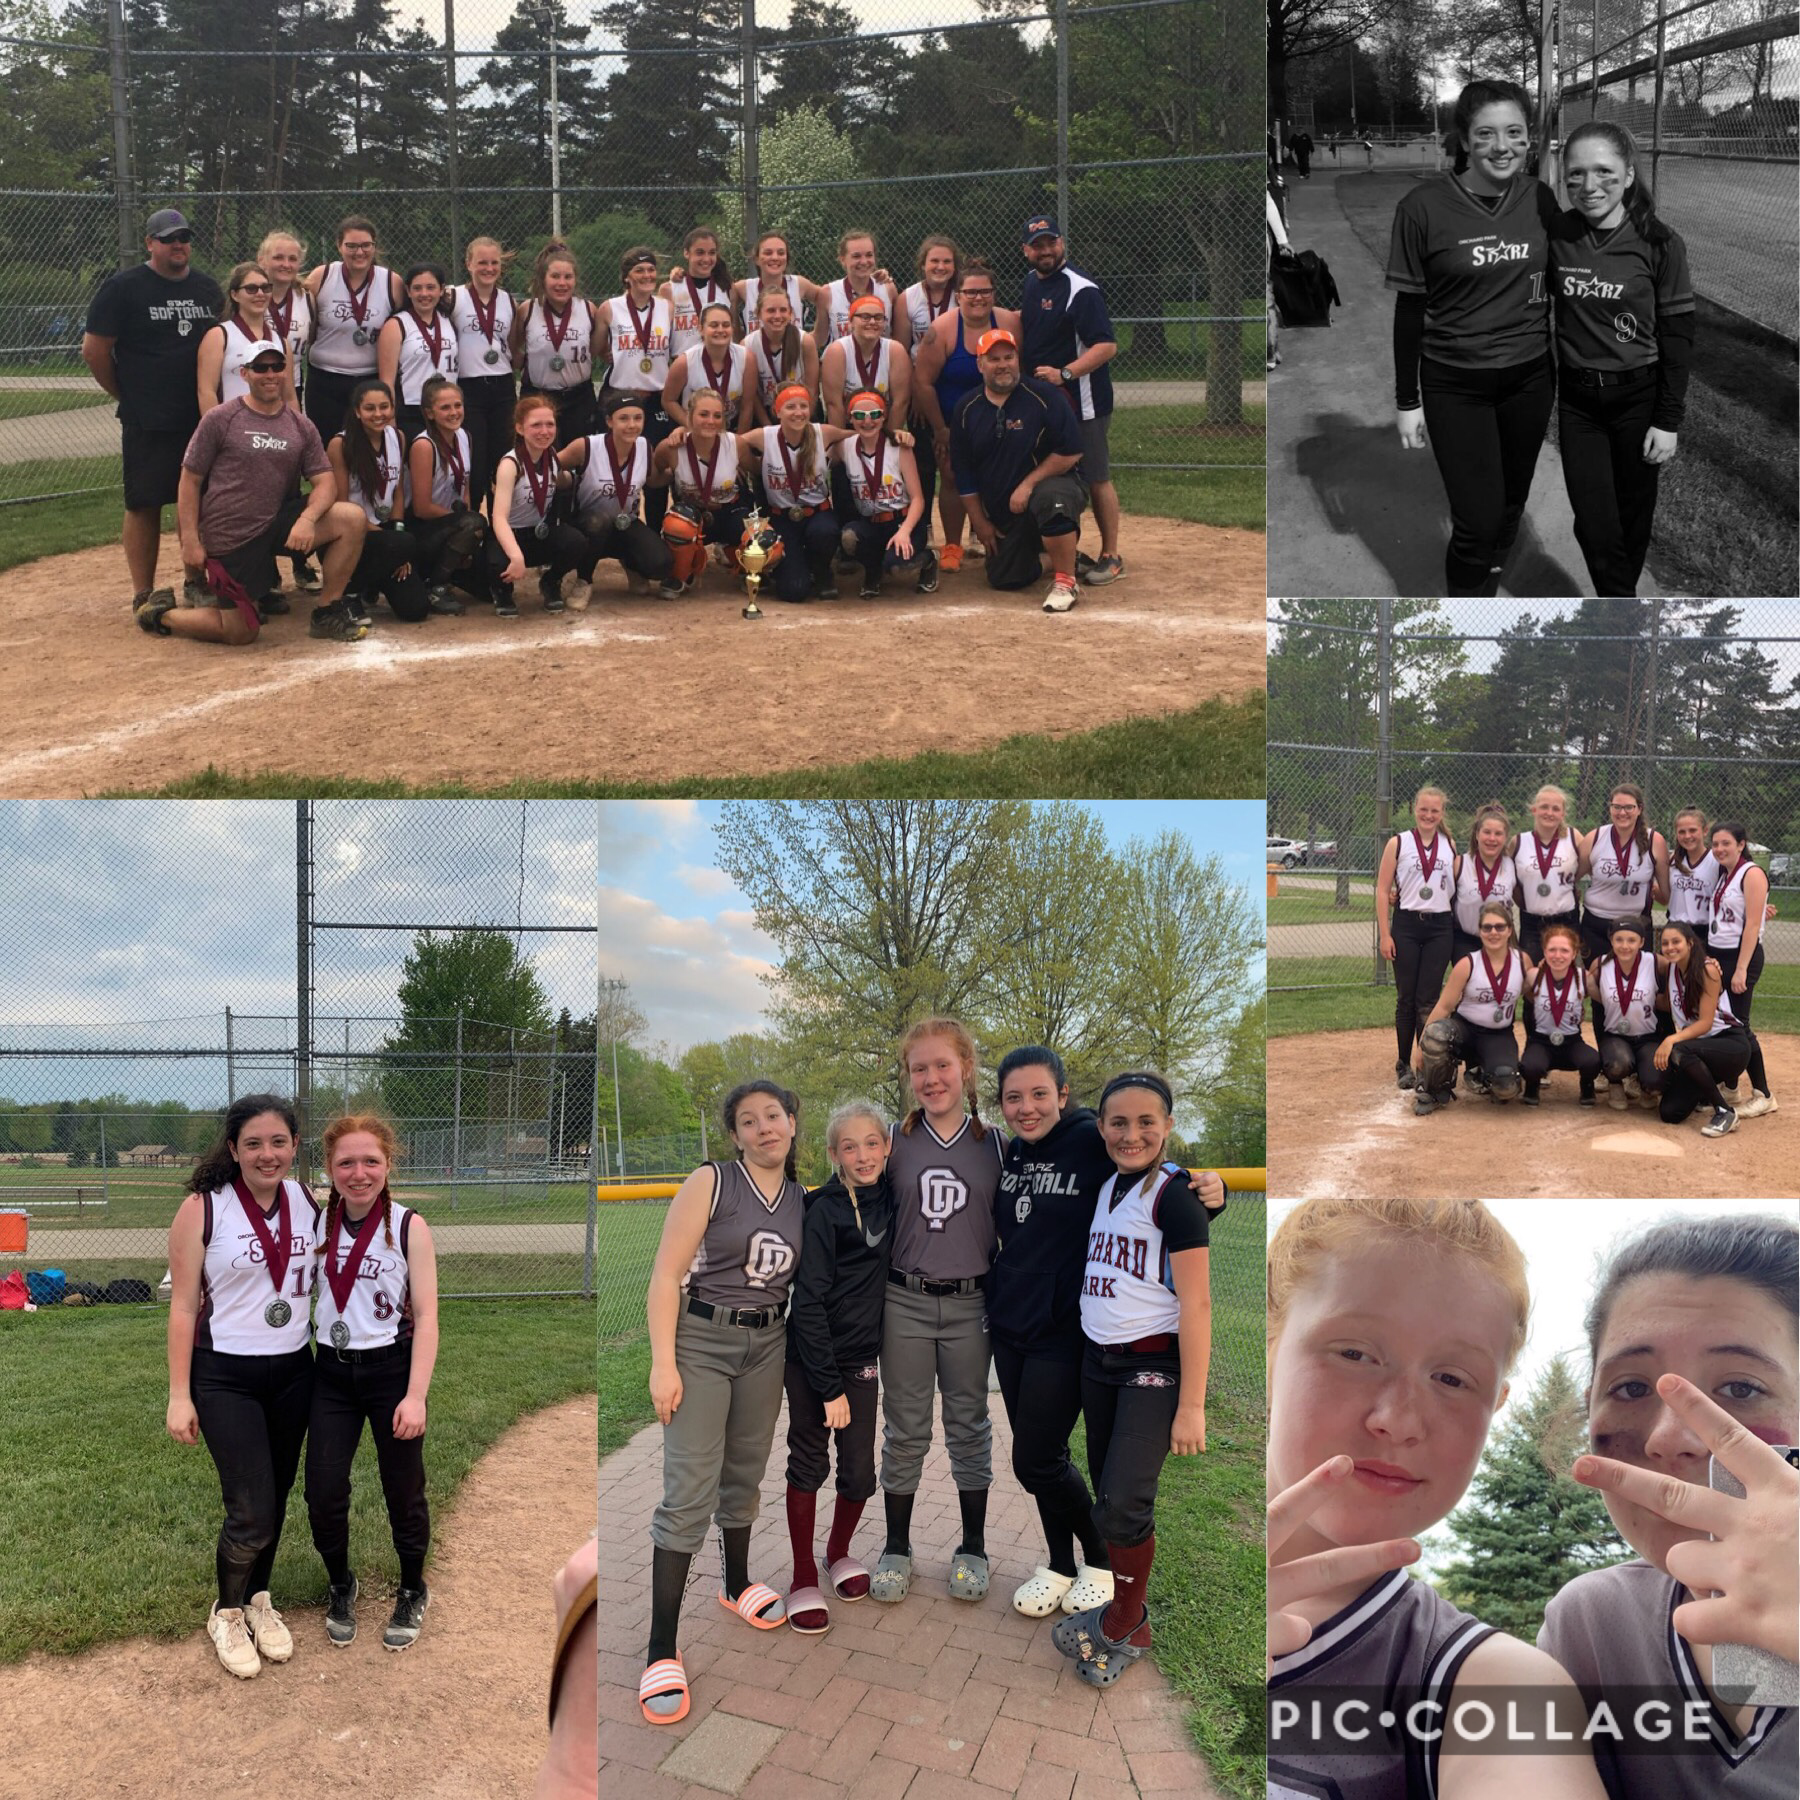 2nd place 14u silver division🔥 1st tournament of the season🥎great way to start off the year❤️ never thought we would get this far together🥰